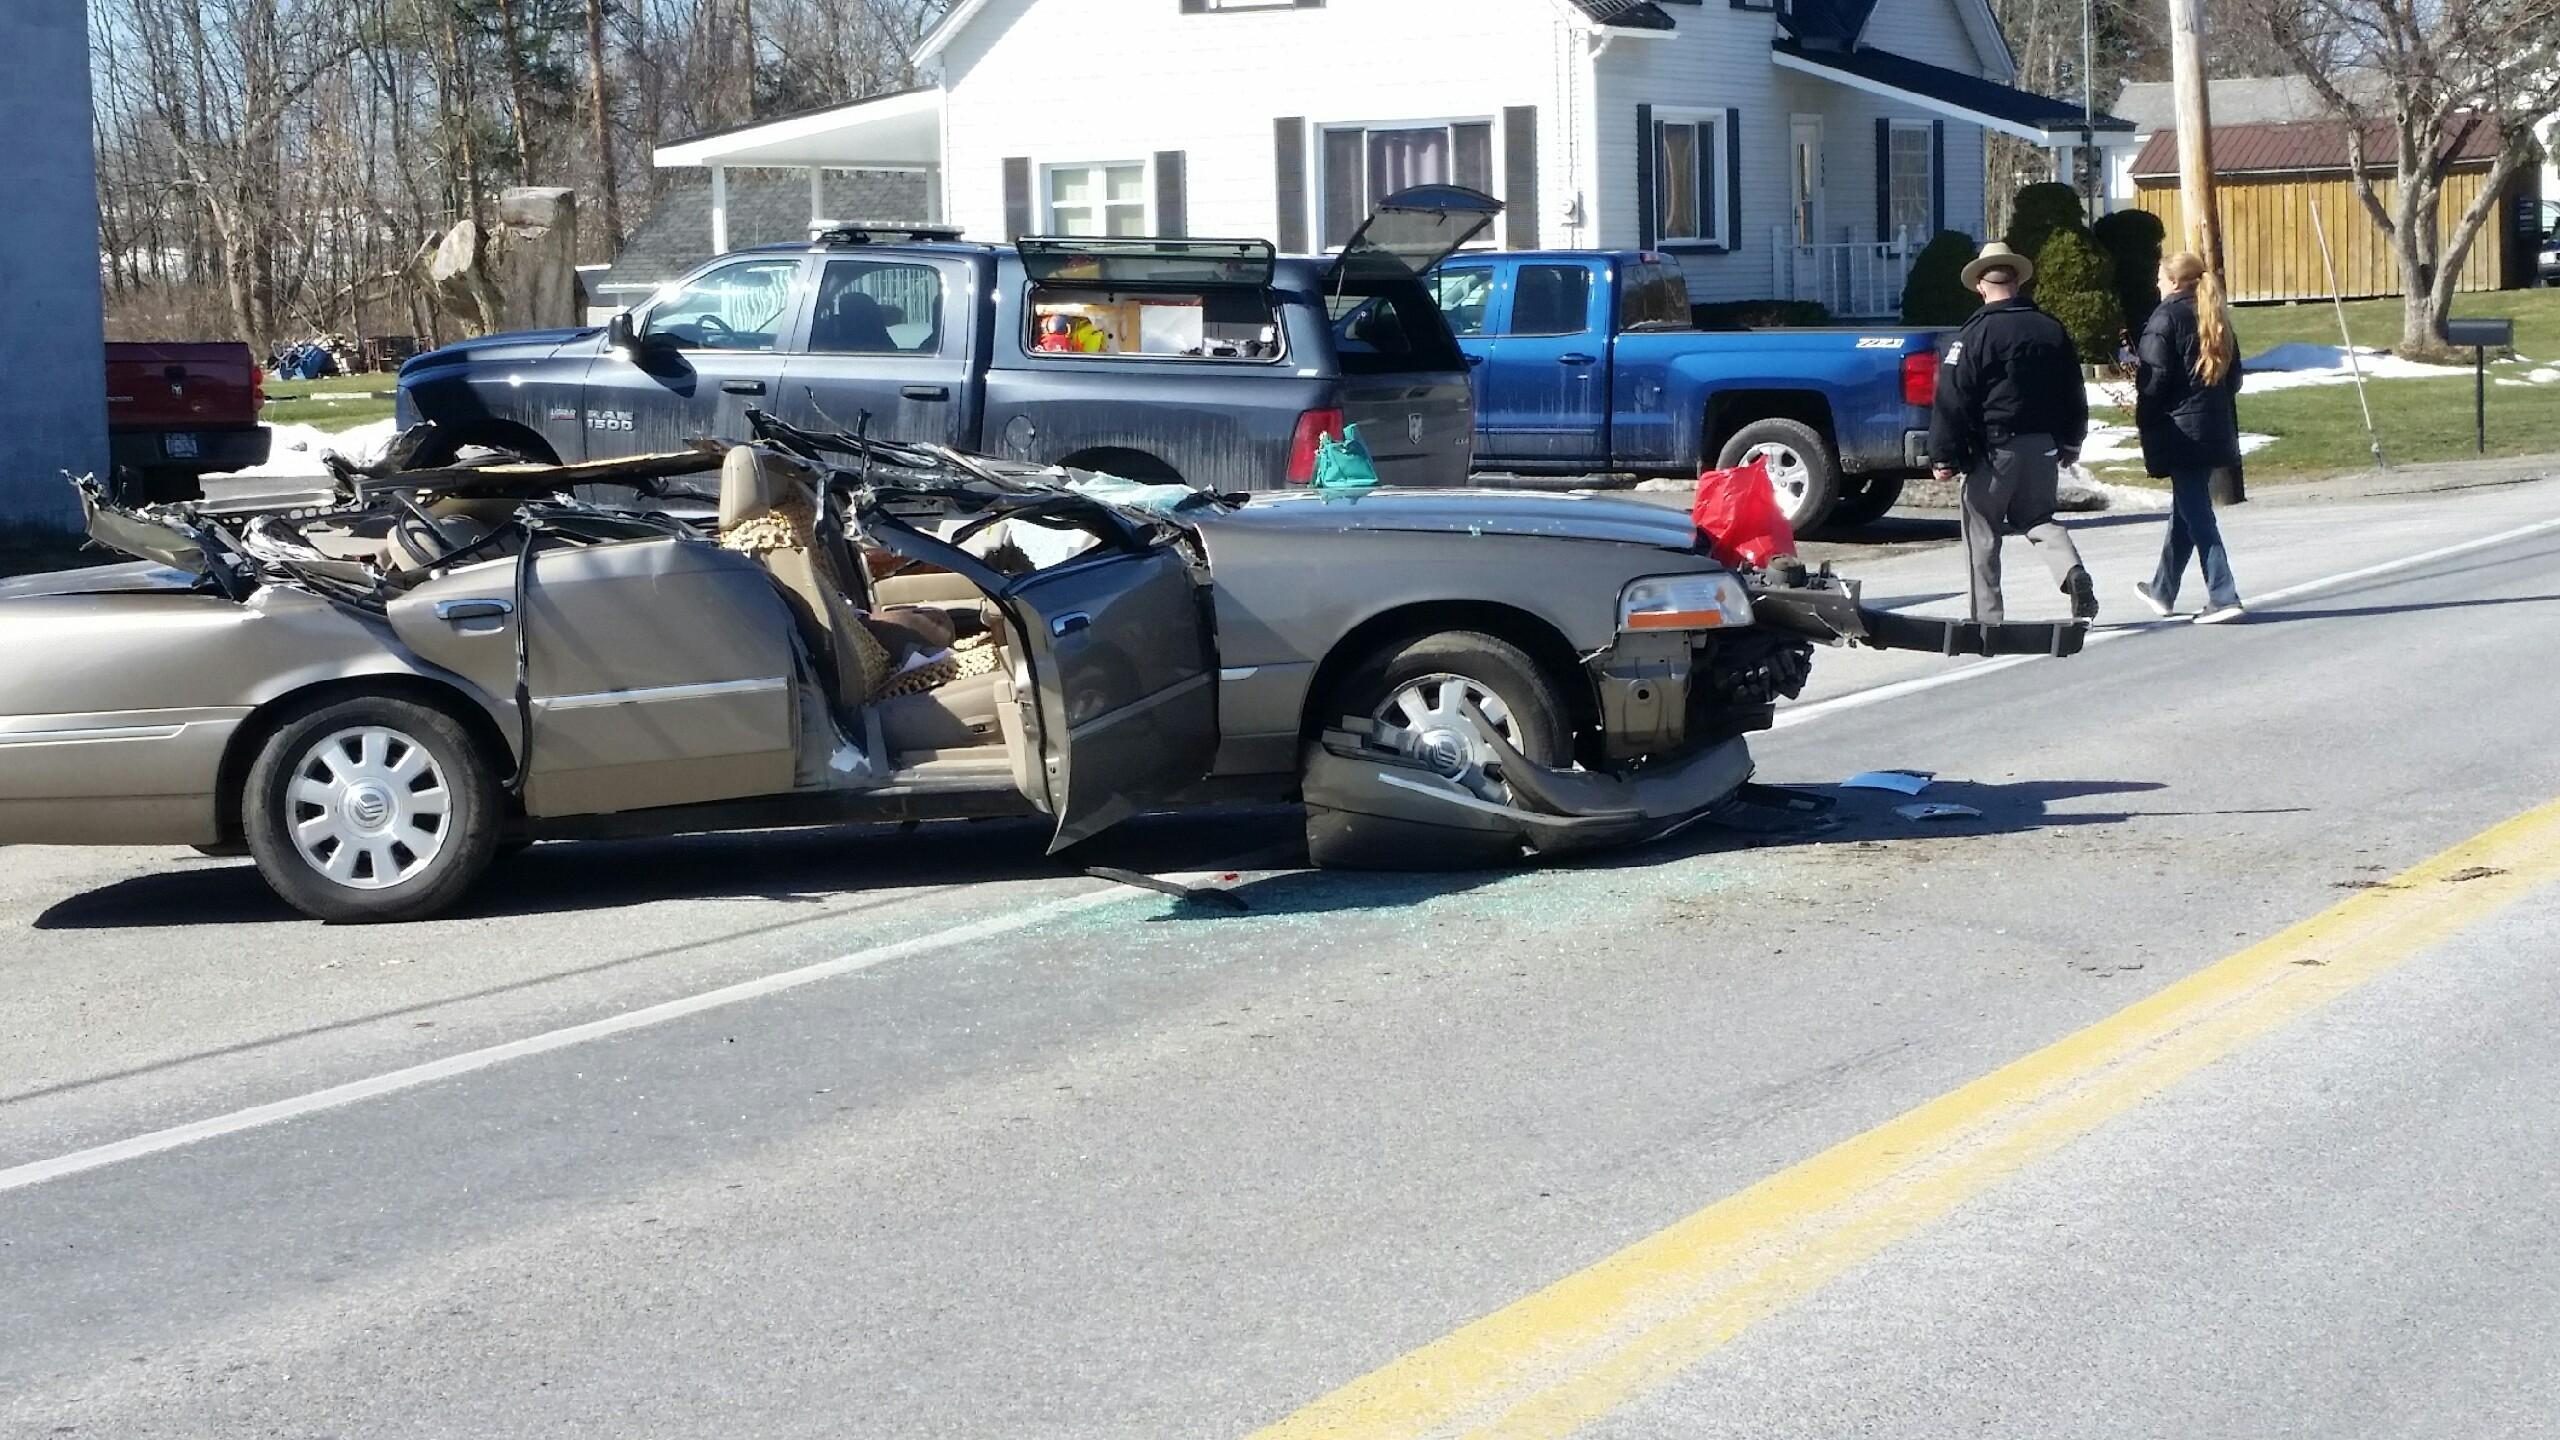 State police photo of Thursday's accident scene in the Town of Alabama in Genesee County.